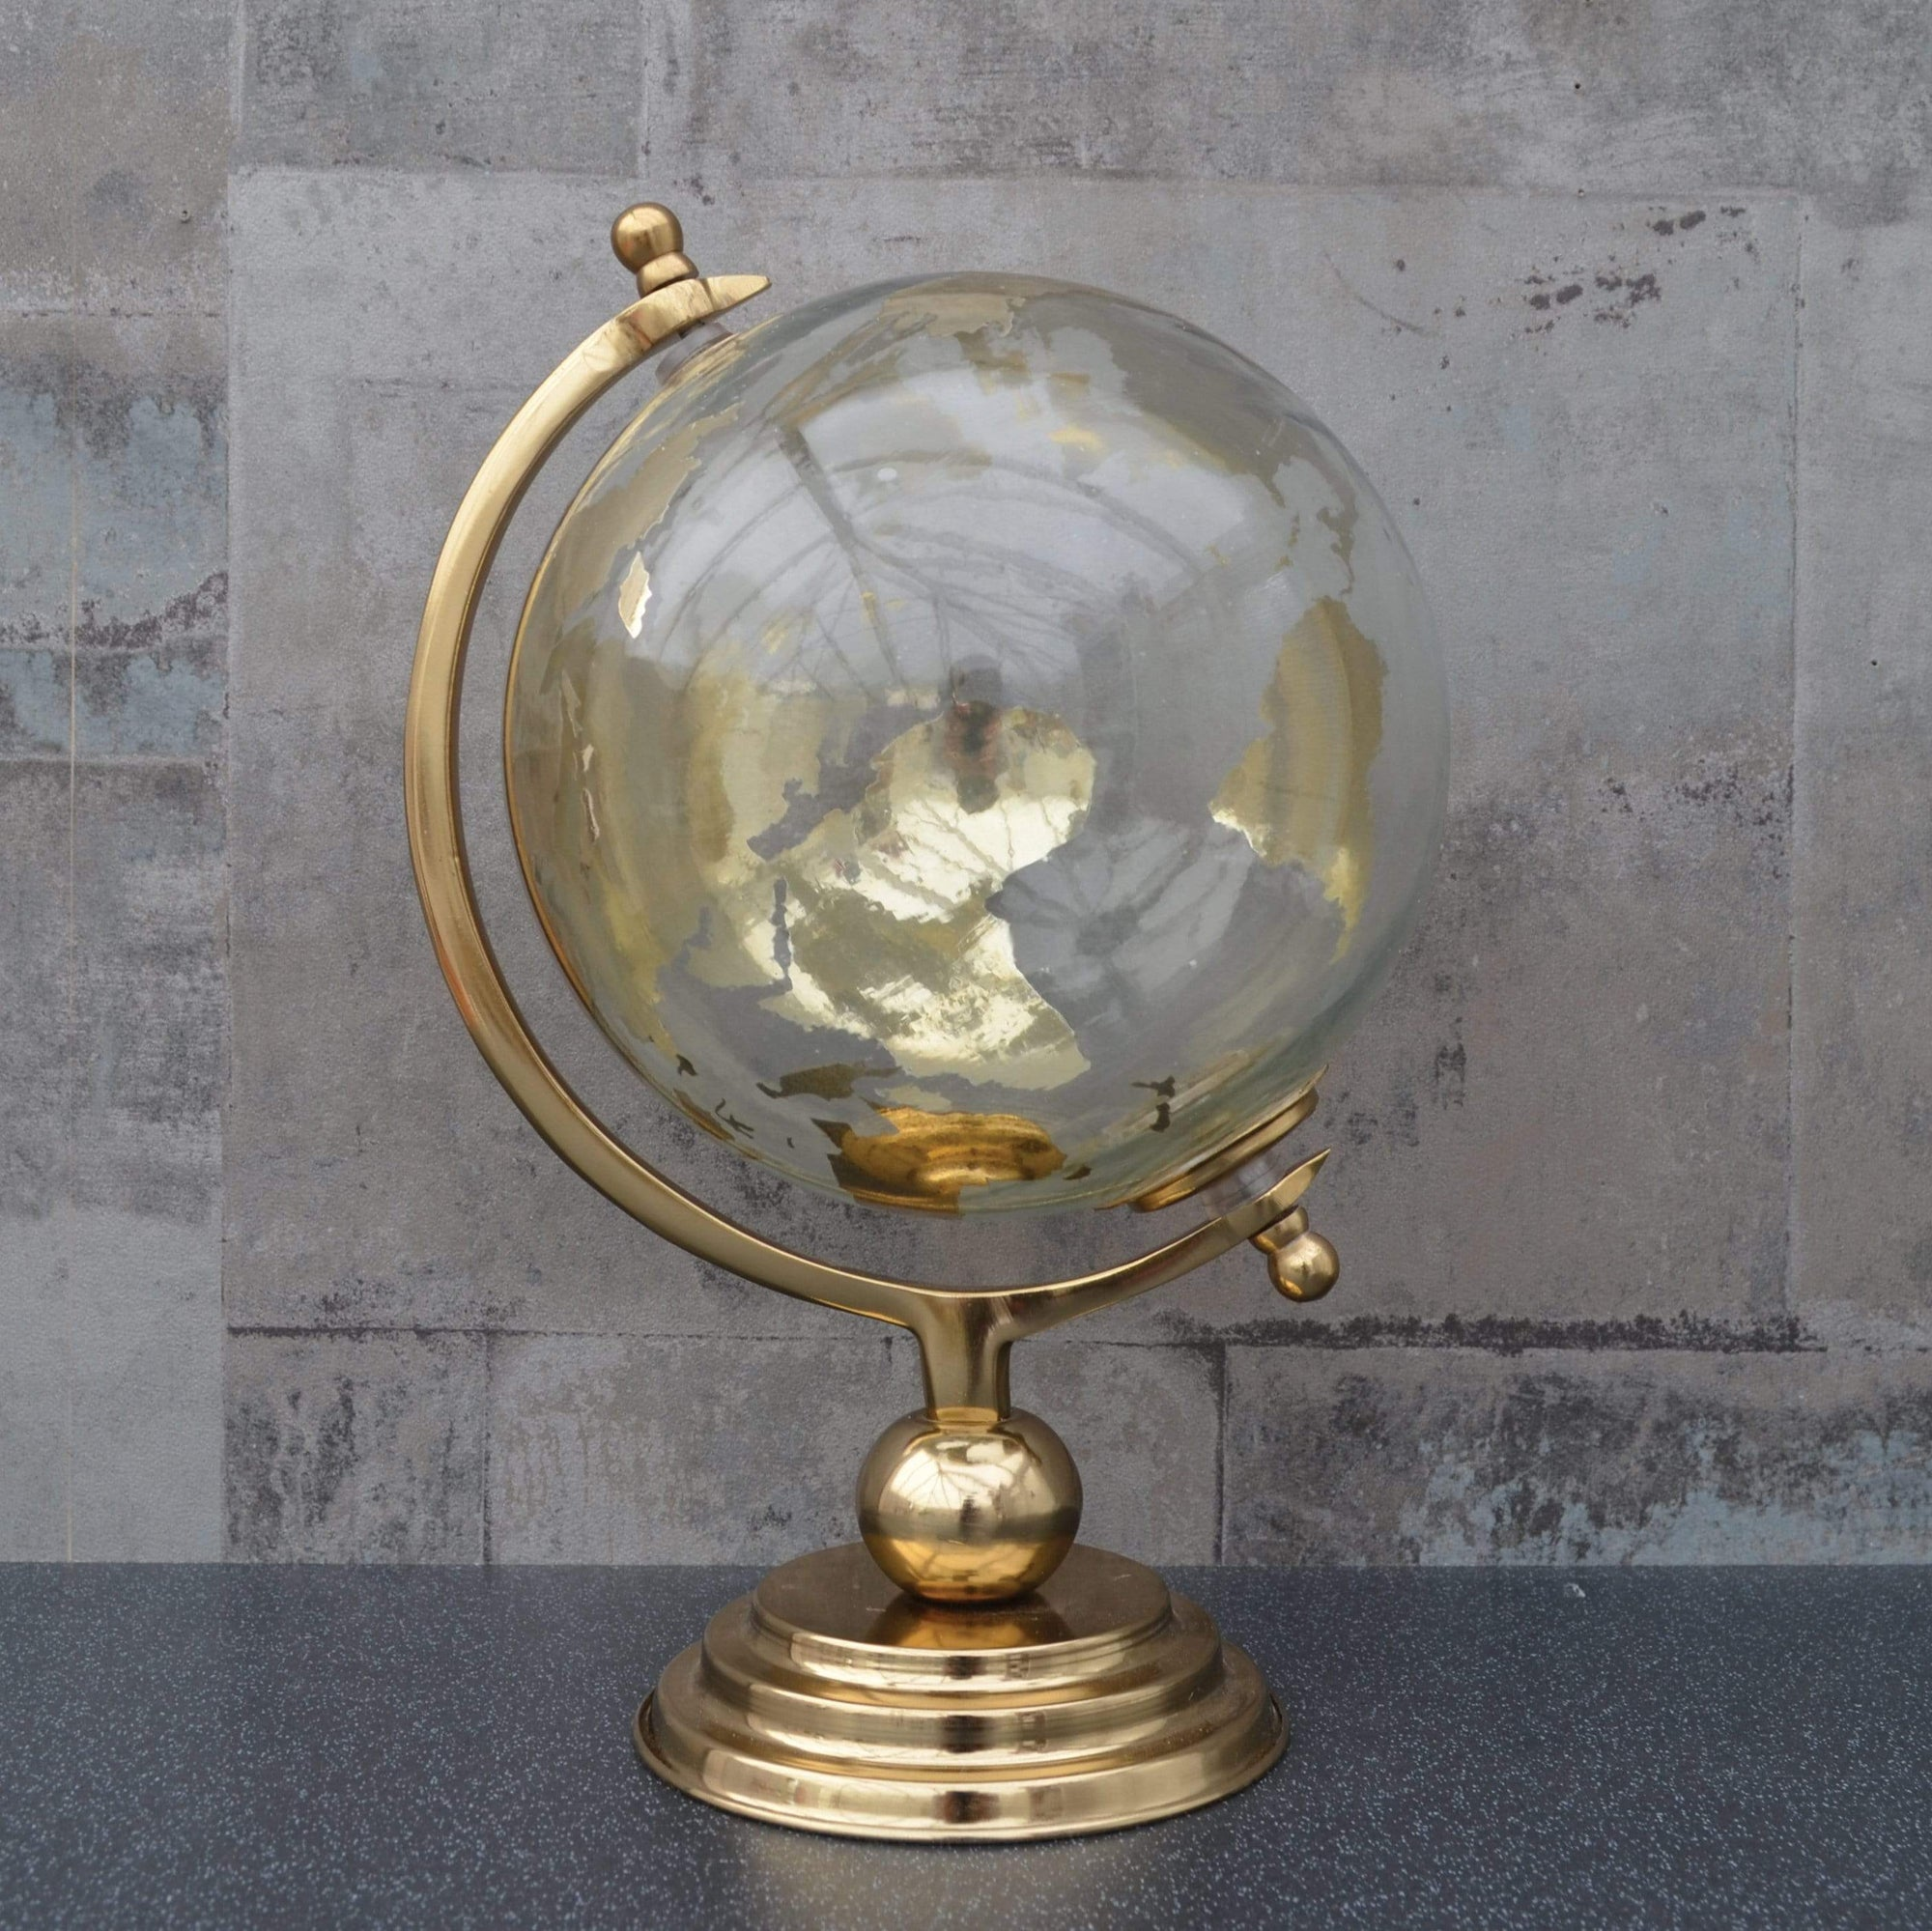 Candlelight Home Globes Large Glass Globe on Metal Stand Gold 32cm 1PK